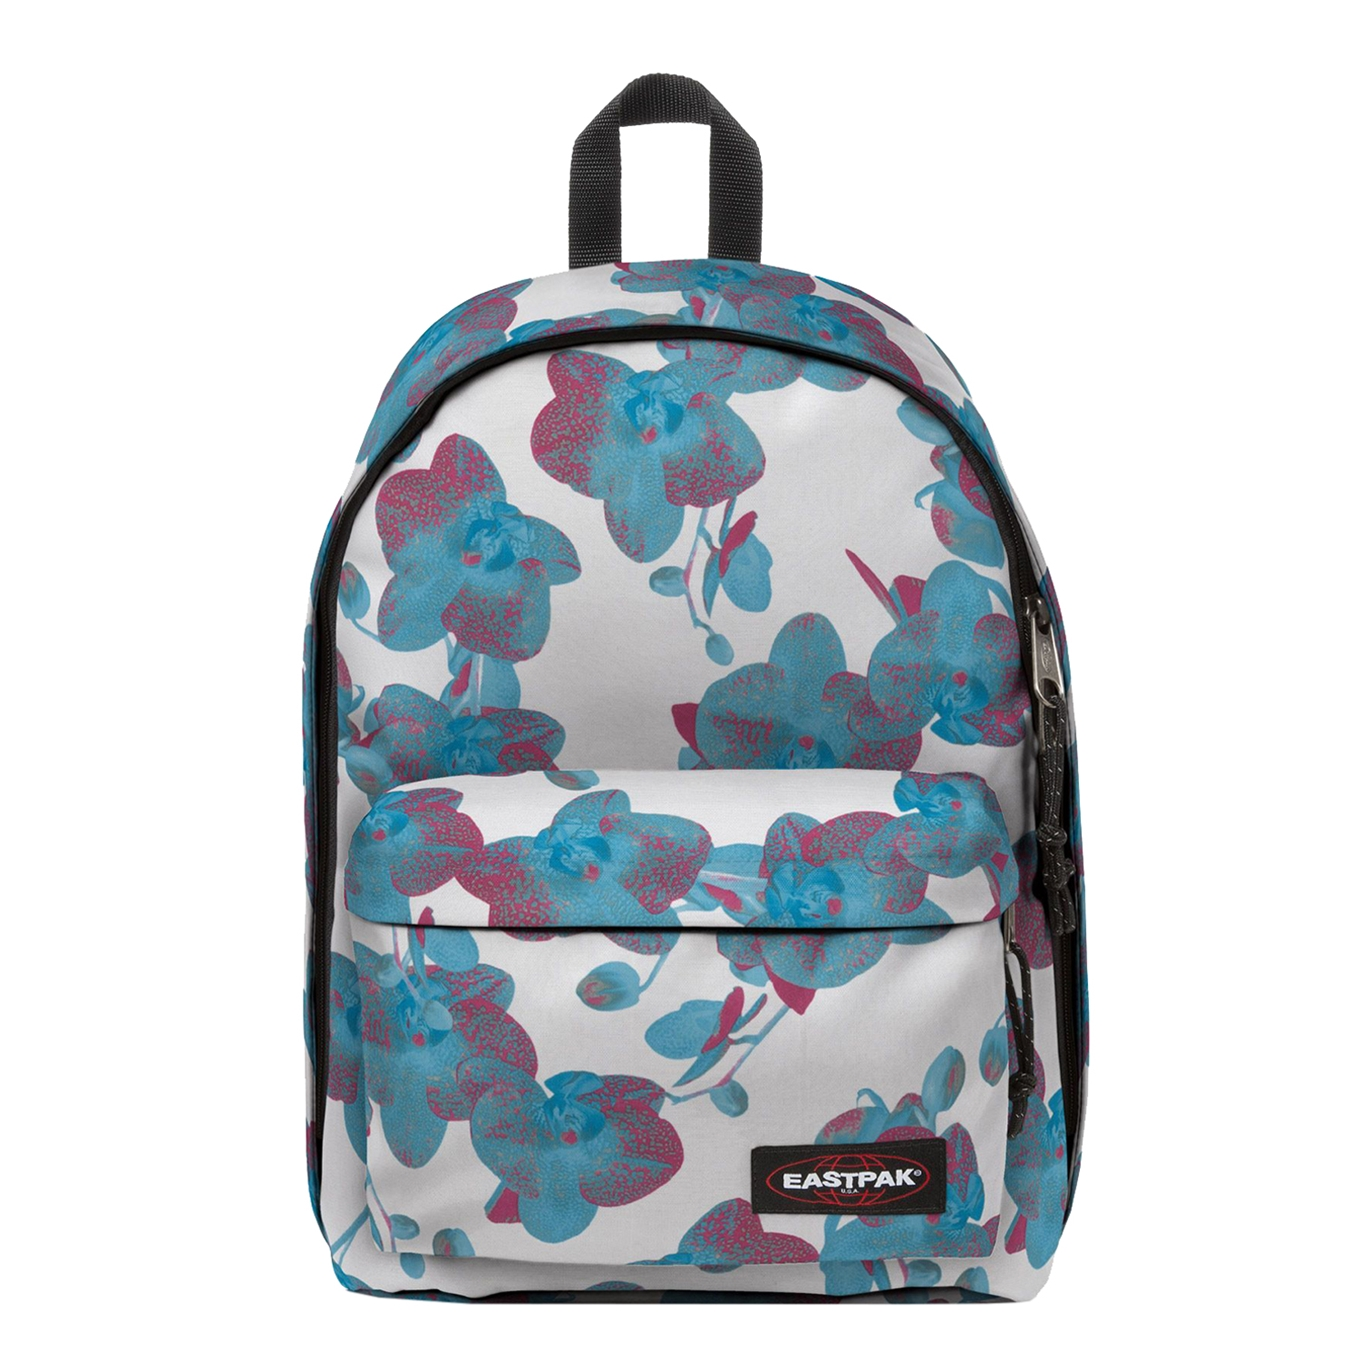 Eastpak Out of Office Rugzak charming white backpack